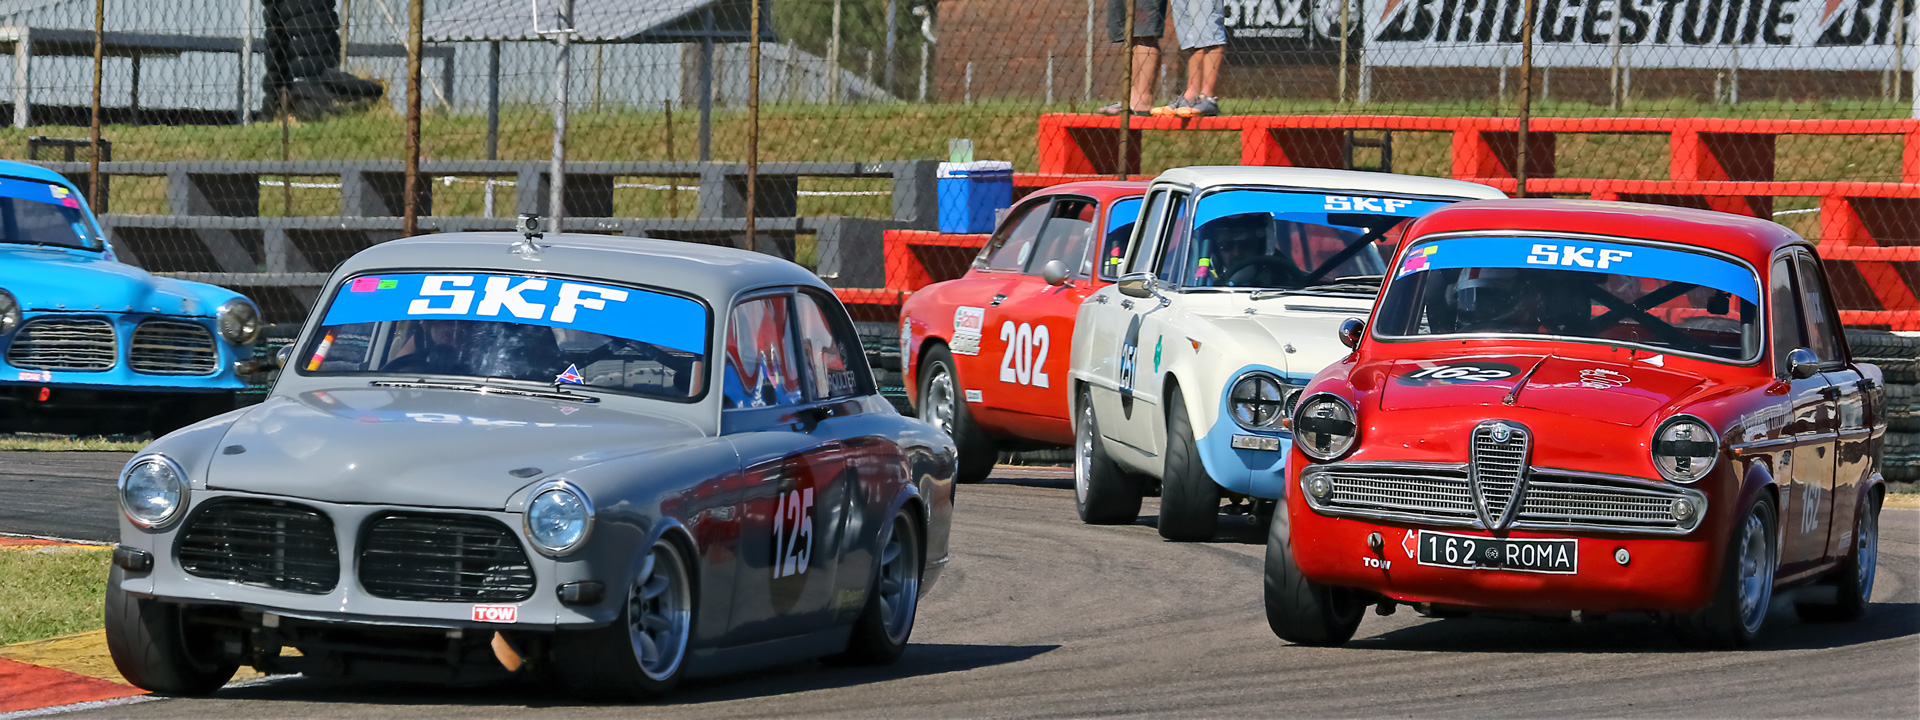 Hot racing at Zwartkops Winter Challenge - 9 June 2018